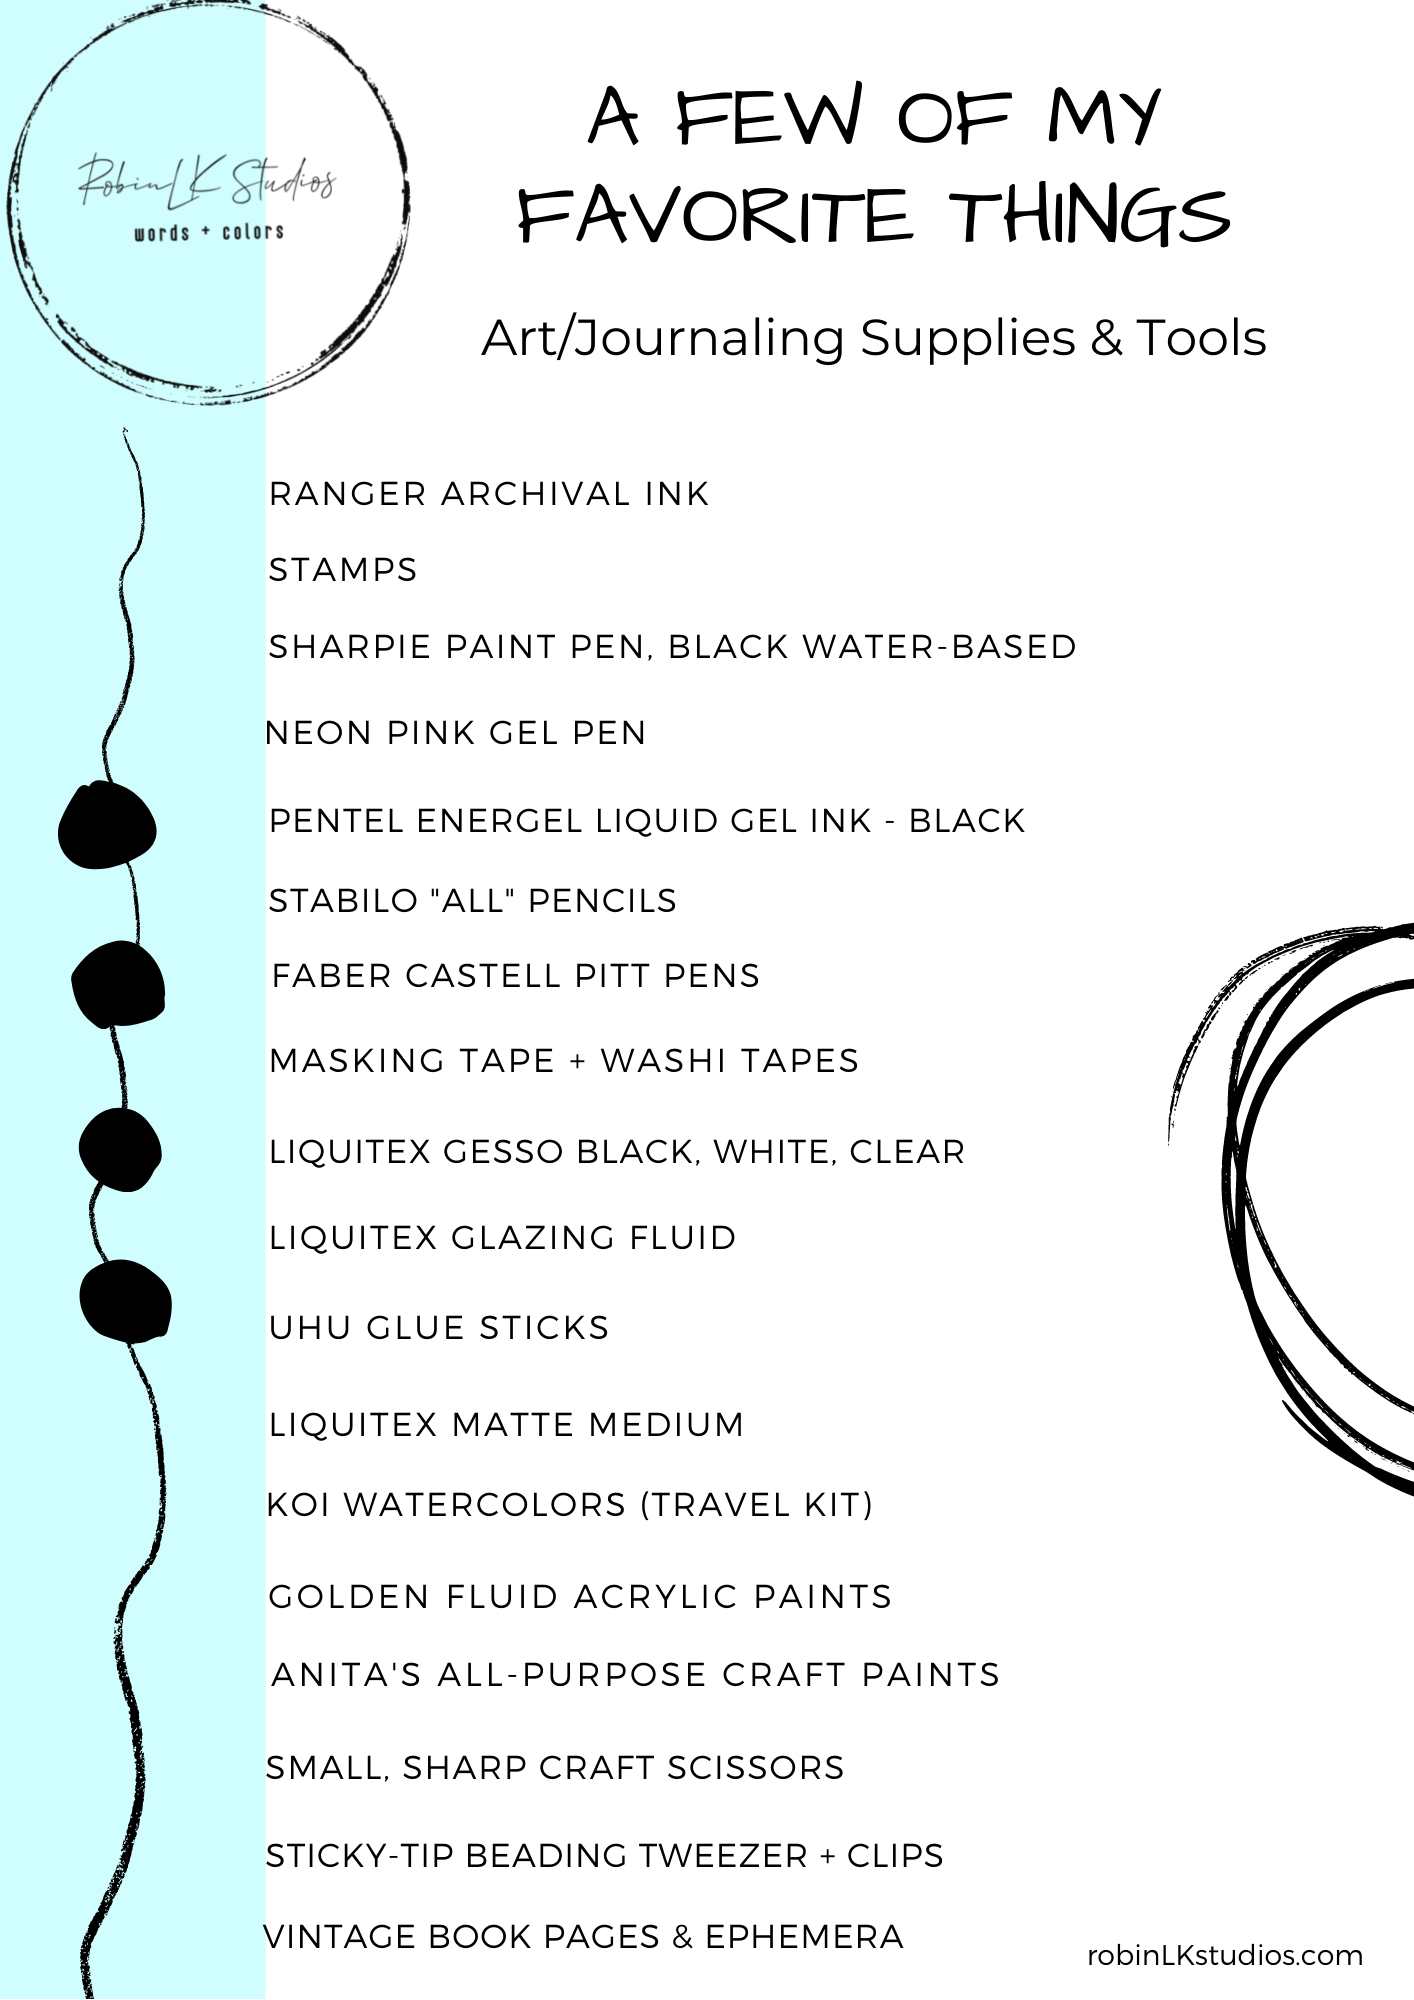 a list of art supplies and tools